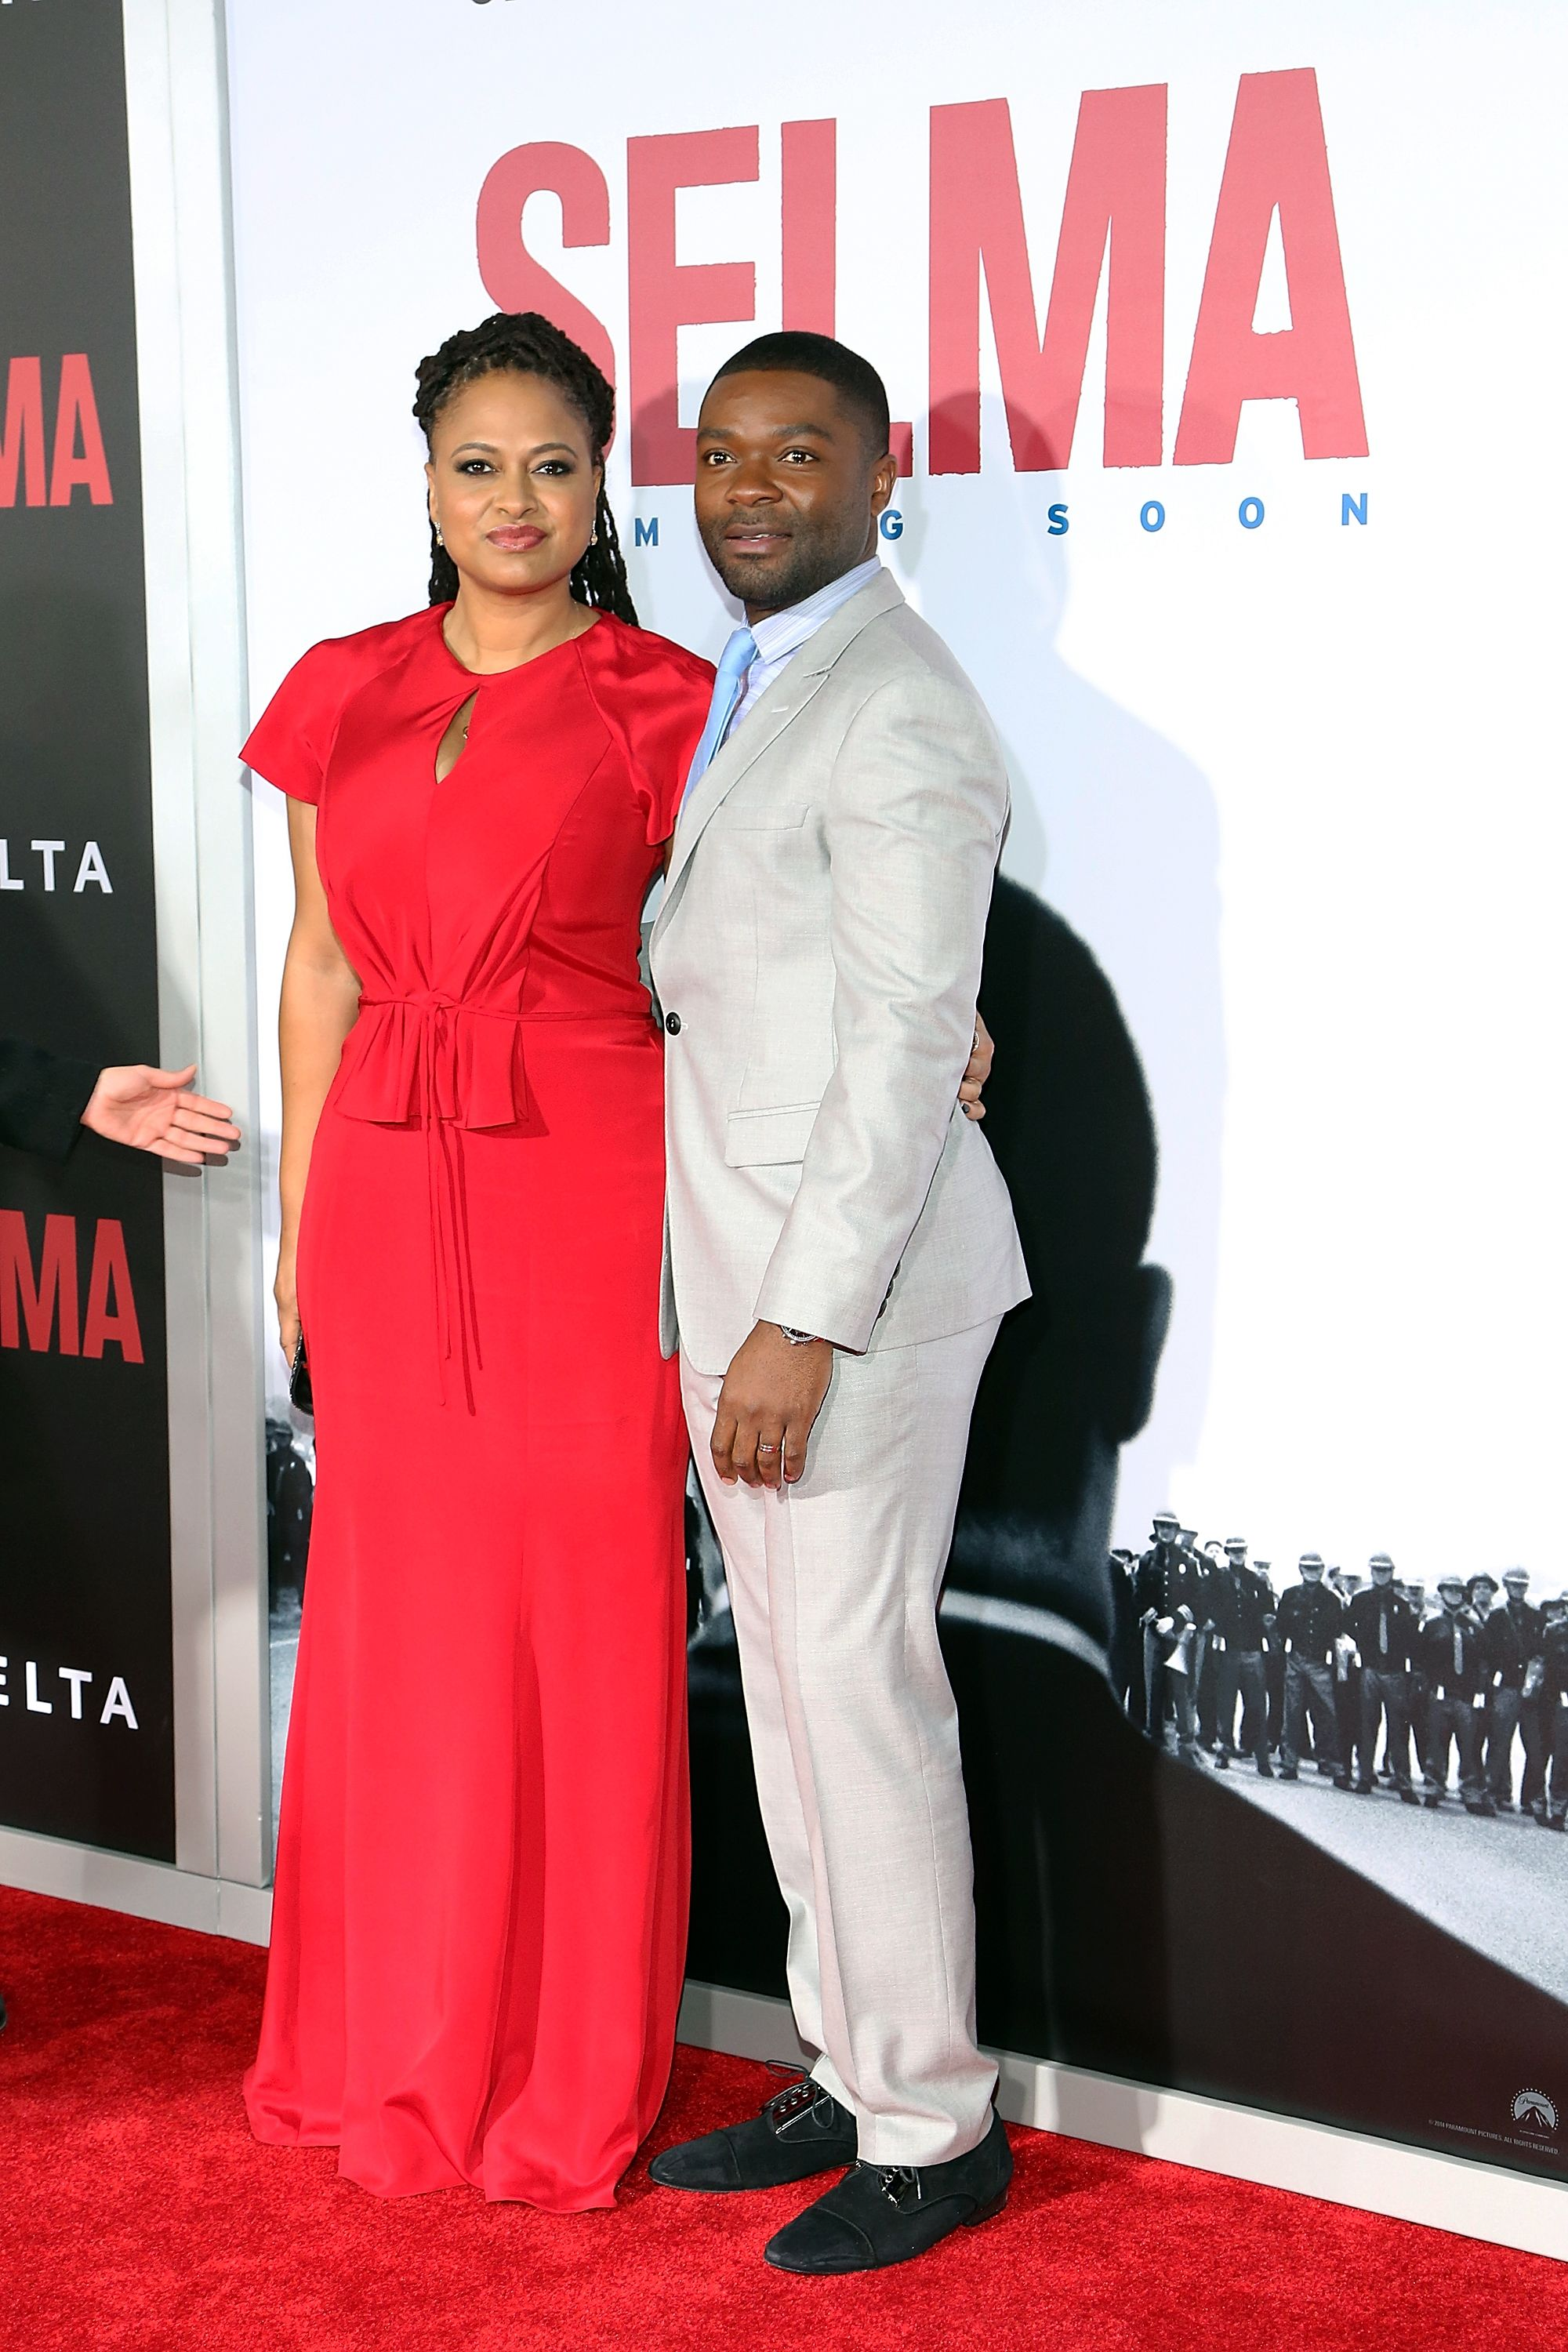 Photo of Ava DuVernay Recalls When Oscar Voters Disapproved of 'Selma' Cast's Eric Garner Tribute